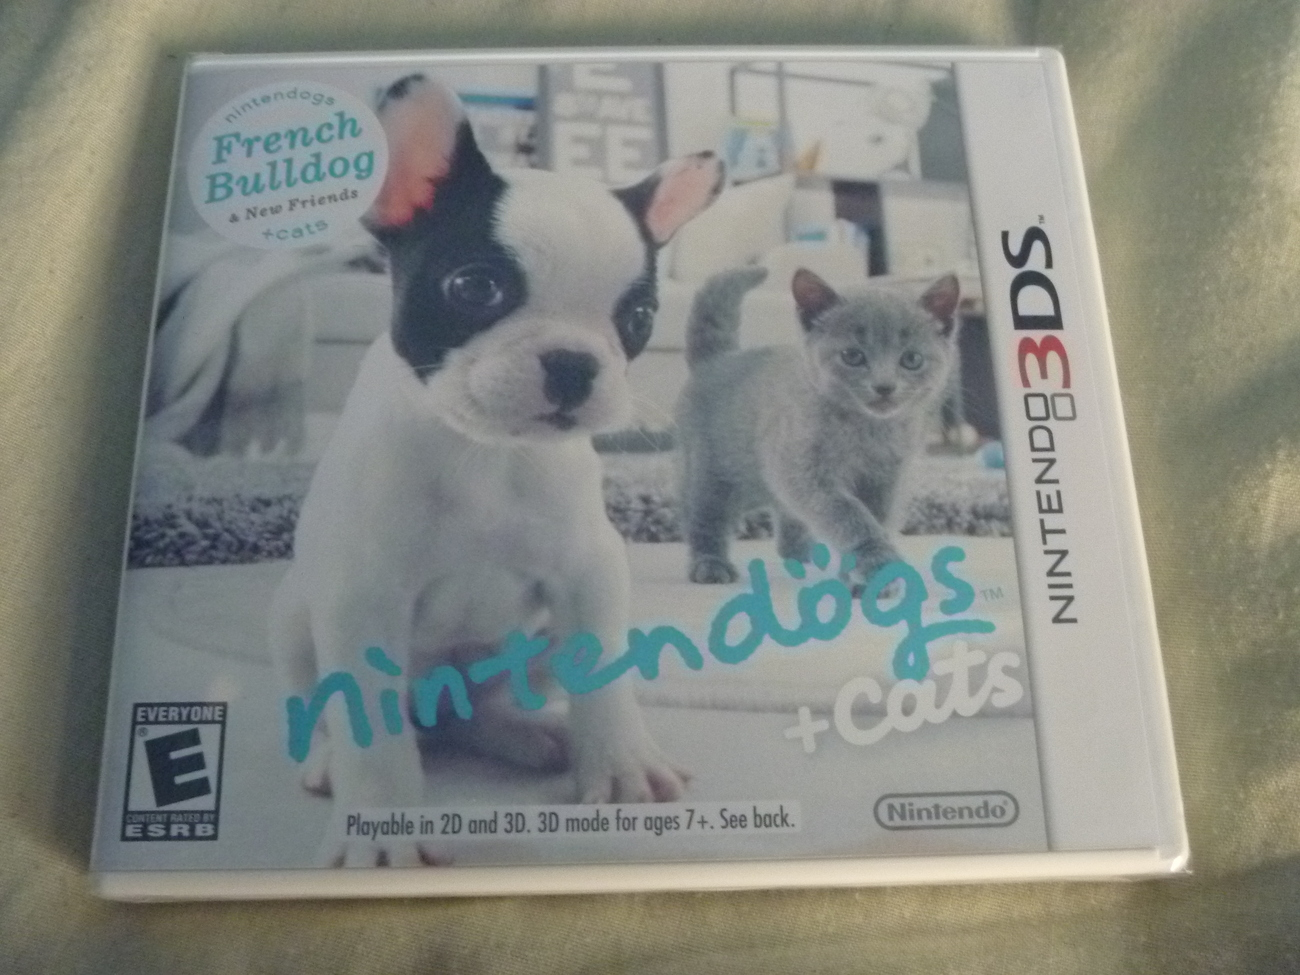 how to start a new game on nintendogs 3ds